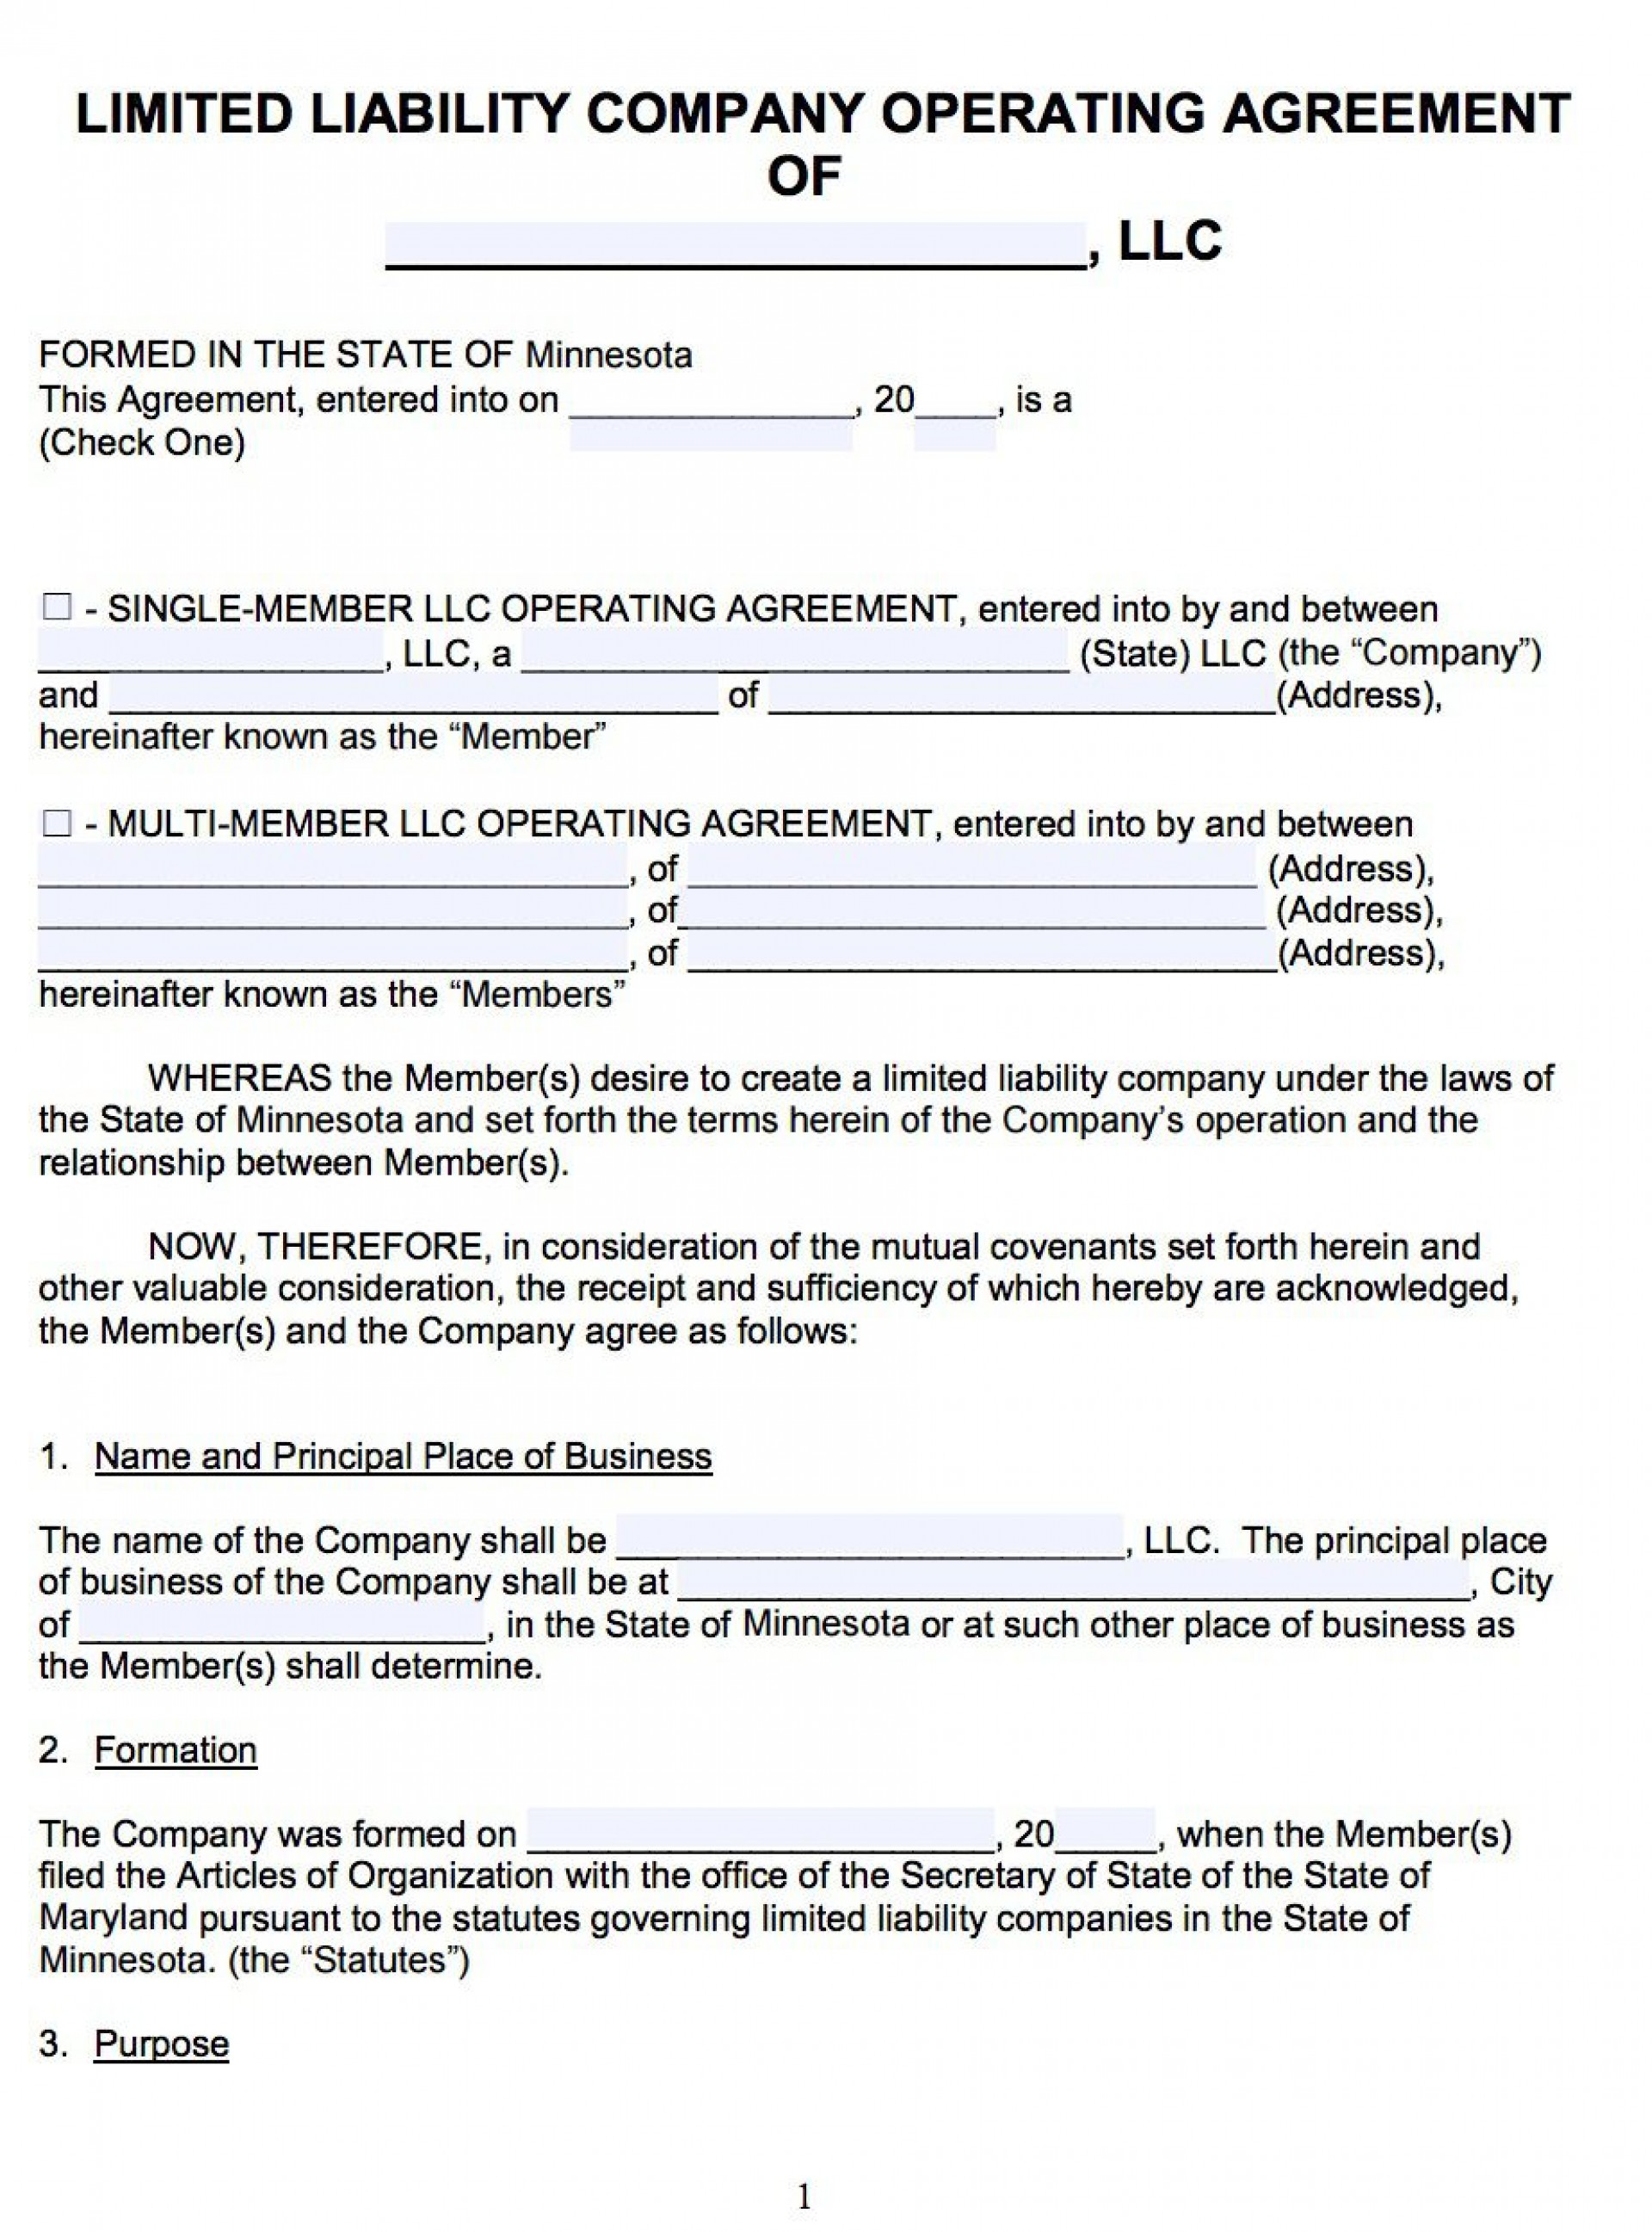 007 Awesome Llc Partnership Agreement Template High Resolution  Free Operating1920